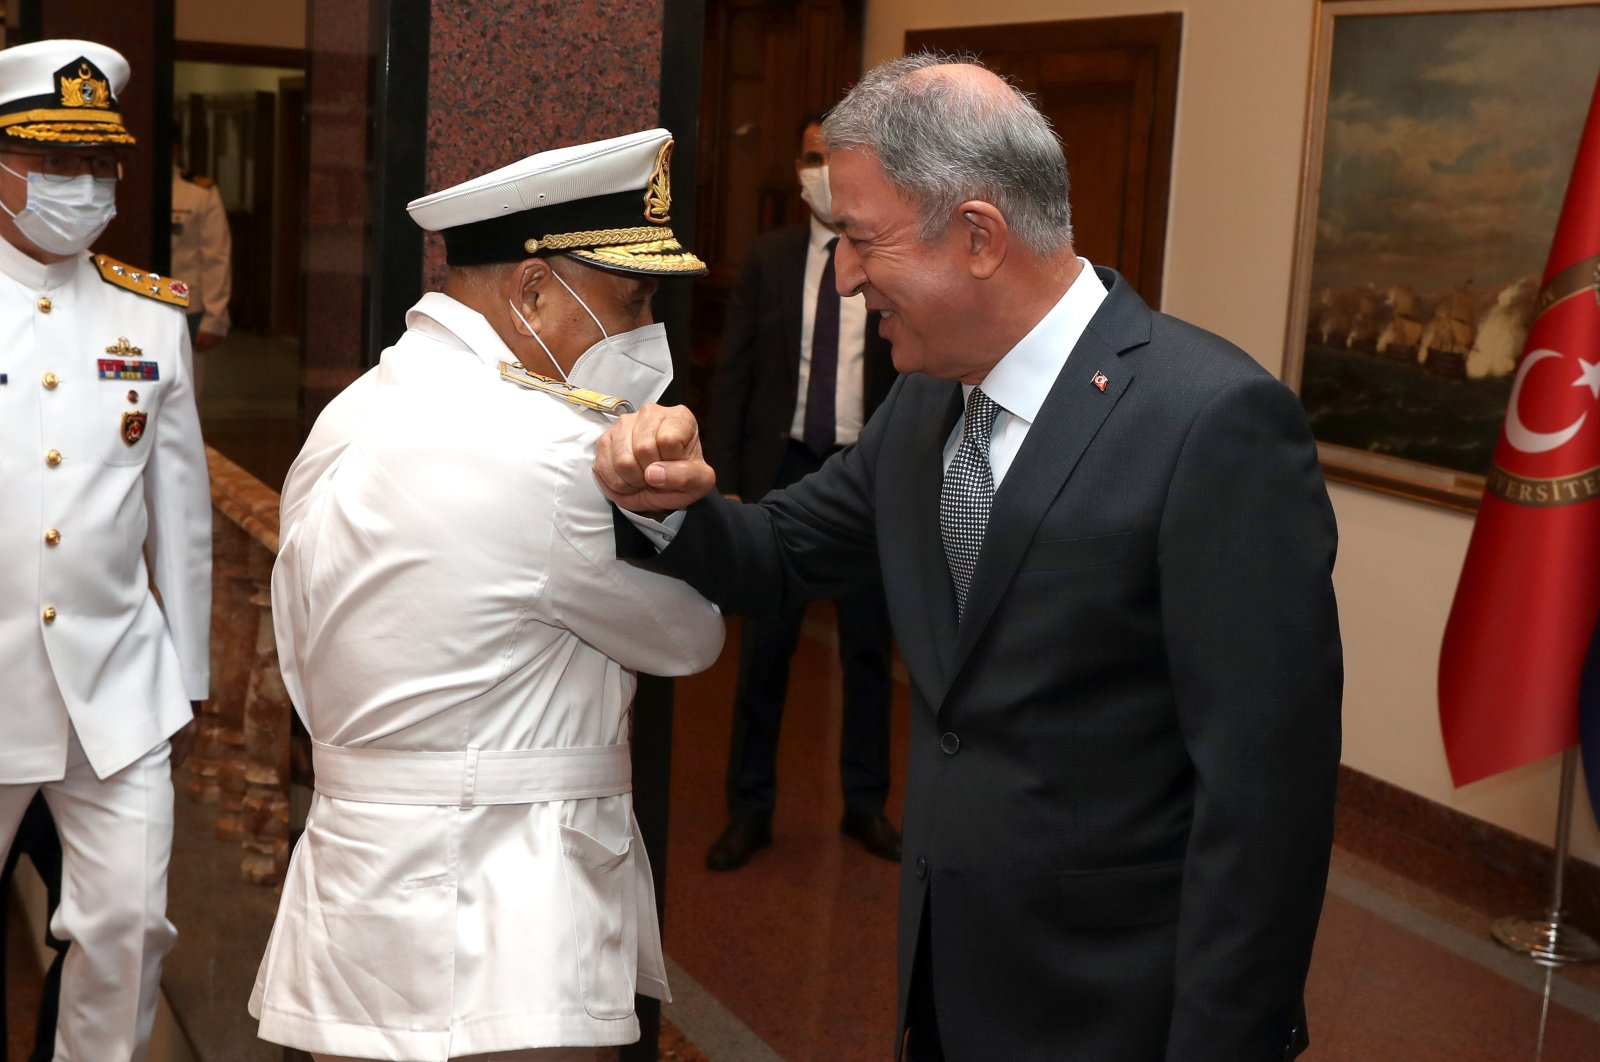 Defense Minister Hulusi Akar receives Libya's Chief of Naval Staff Abdul Hakim Abu Hawliyeh in the capital Ankara, Sept.14, 2020. (Defense Ministry Courtesy)